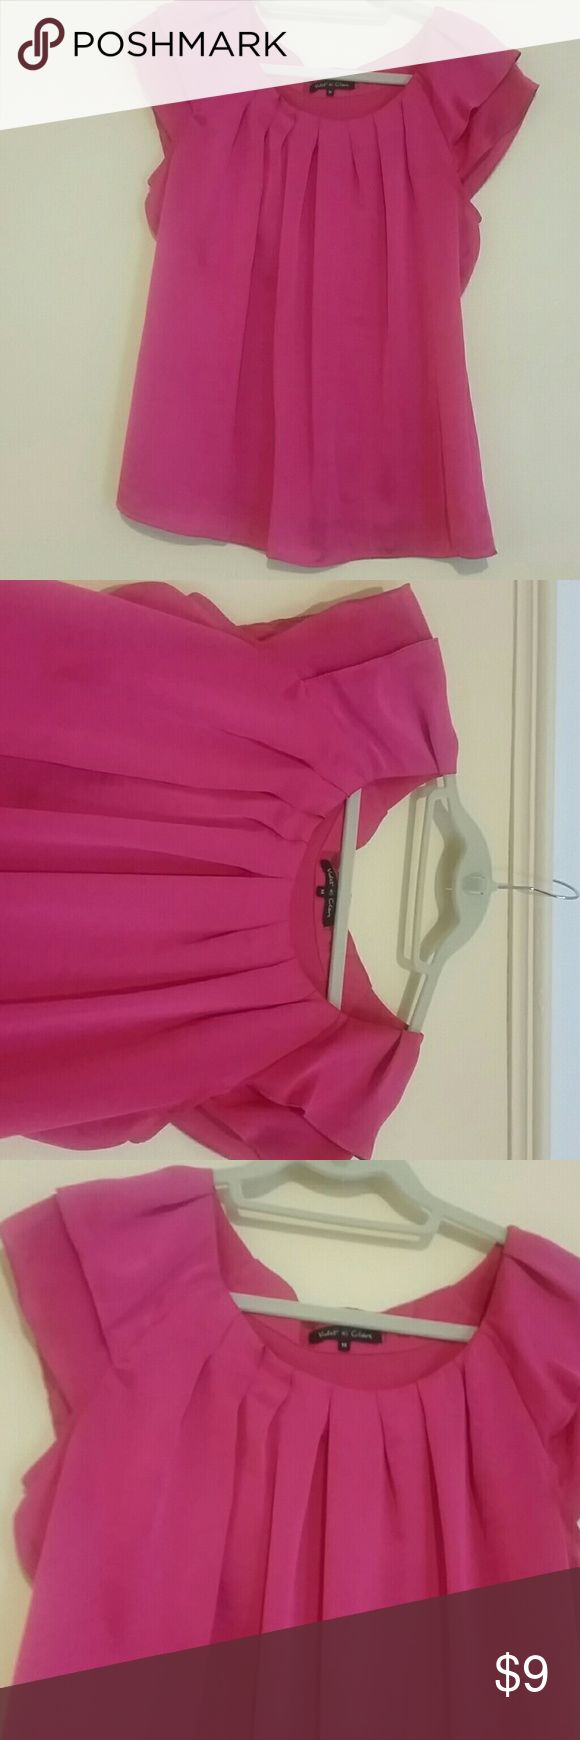 Cap sleeve hot pink blouse Easy to wear hot pink cap sleeve blouse. Pleated detail at neckline. Pretty & delicate. 100% polyester,  feels like silk. Great for work or play! Violet & Claire Tops Blouses